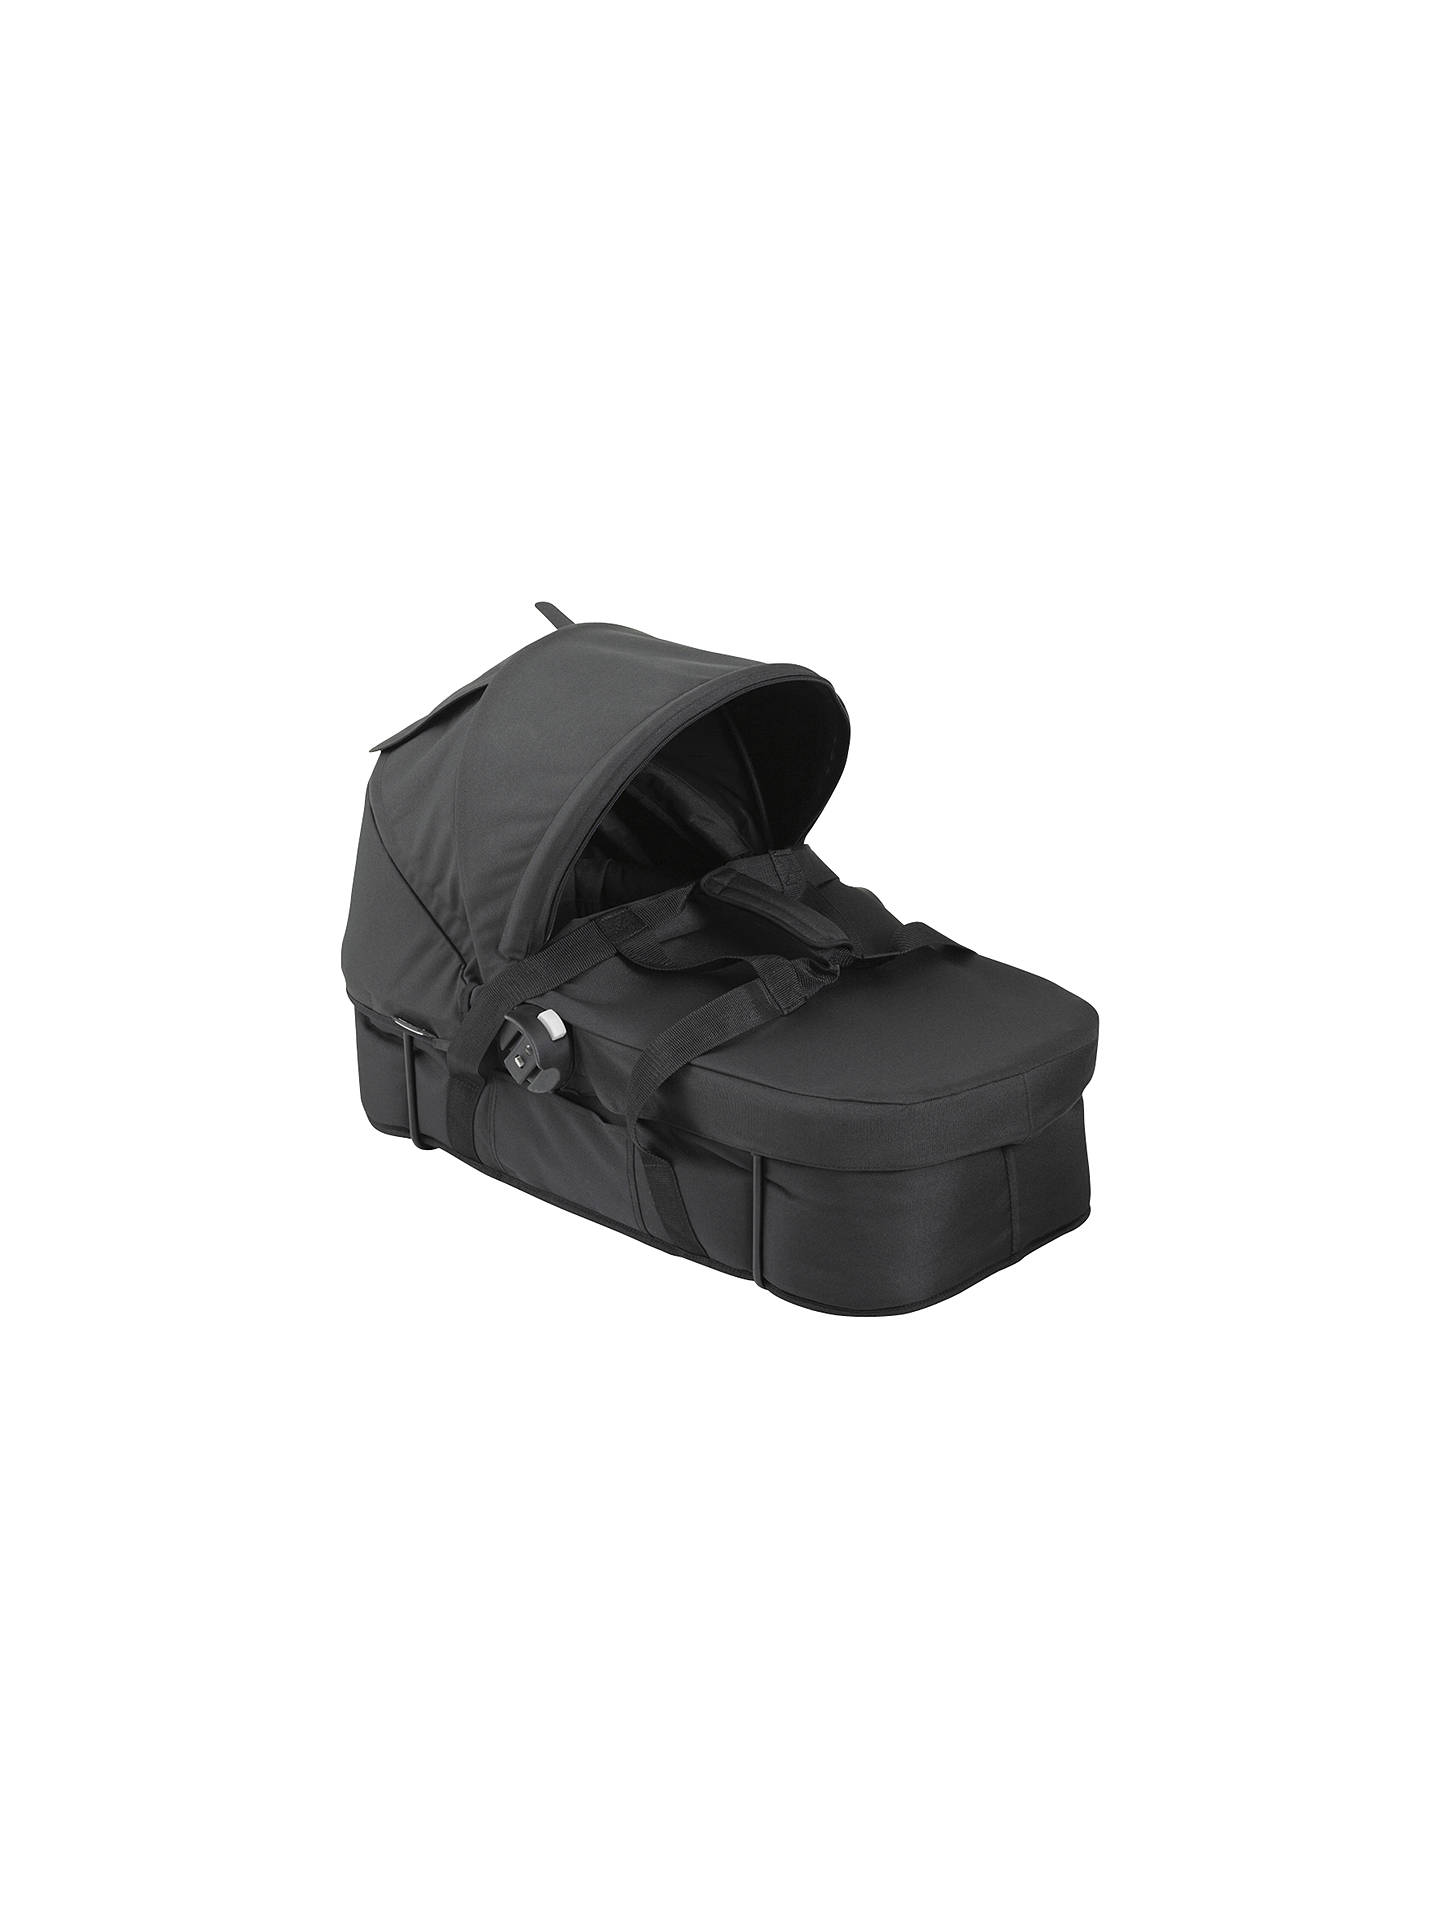 BuyBaby Jogger City Select Carrycot Kit, Onyx Online at johnlewis.com